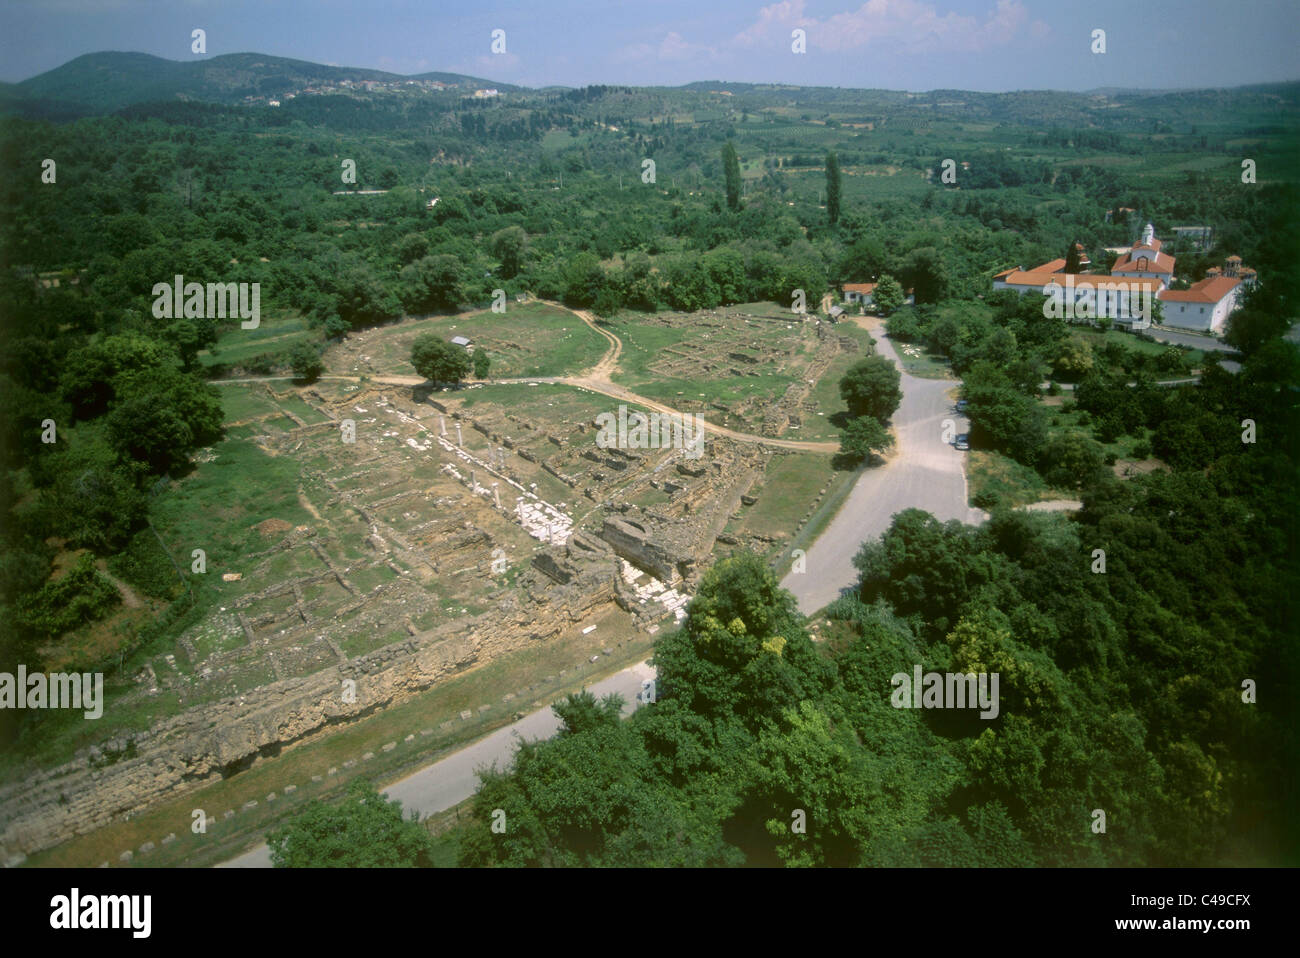 Aerial photograph of the ruins of the ancient Greek cirt of Edessa - Stock Image